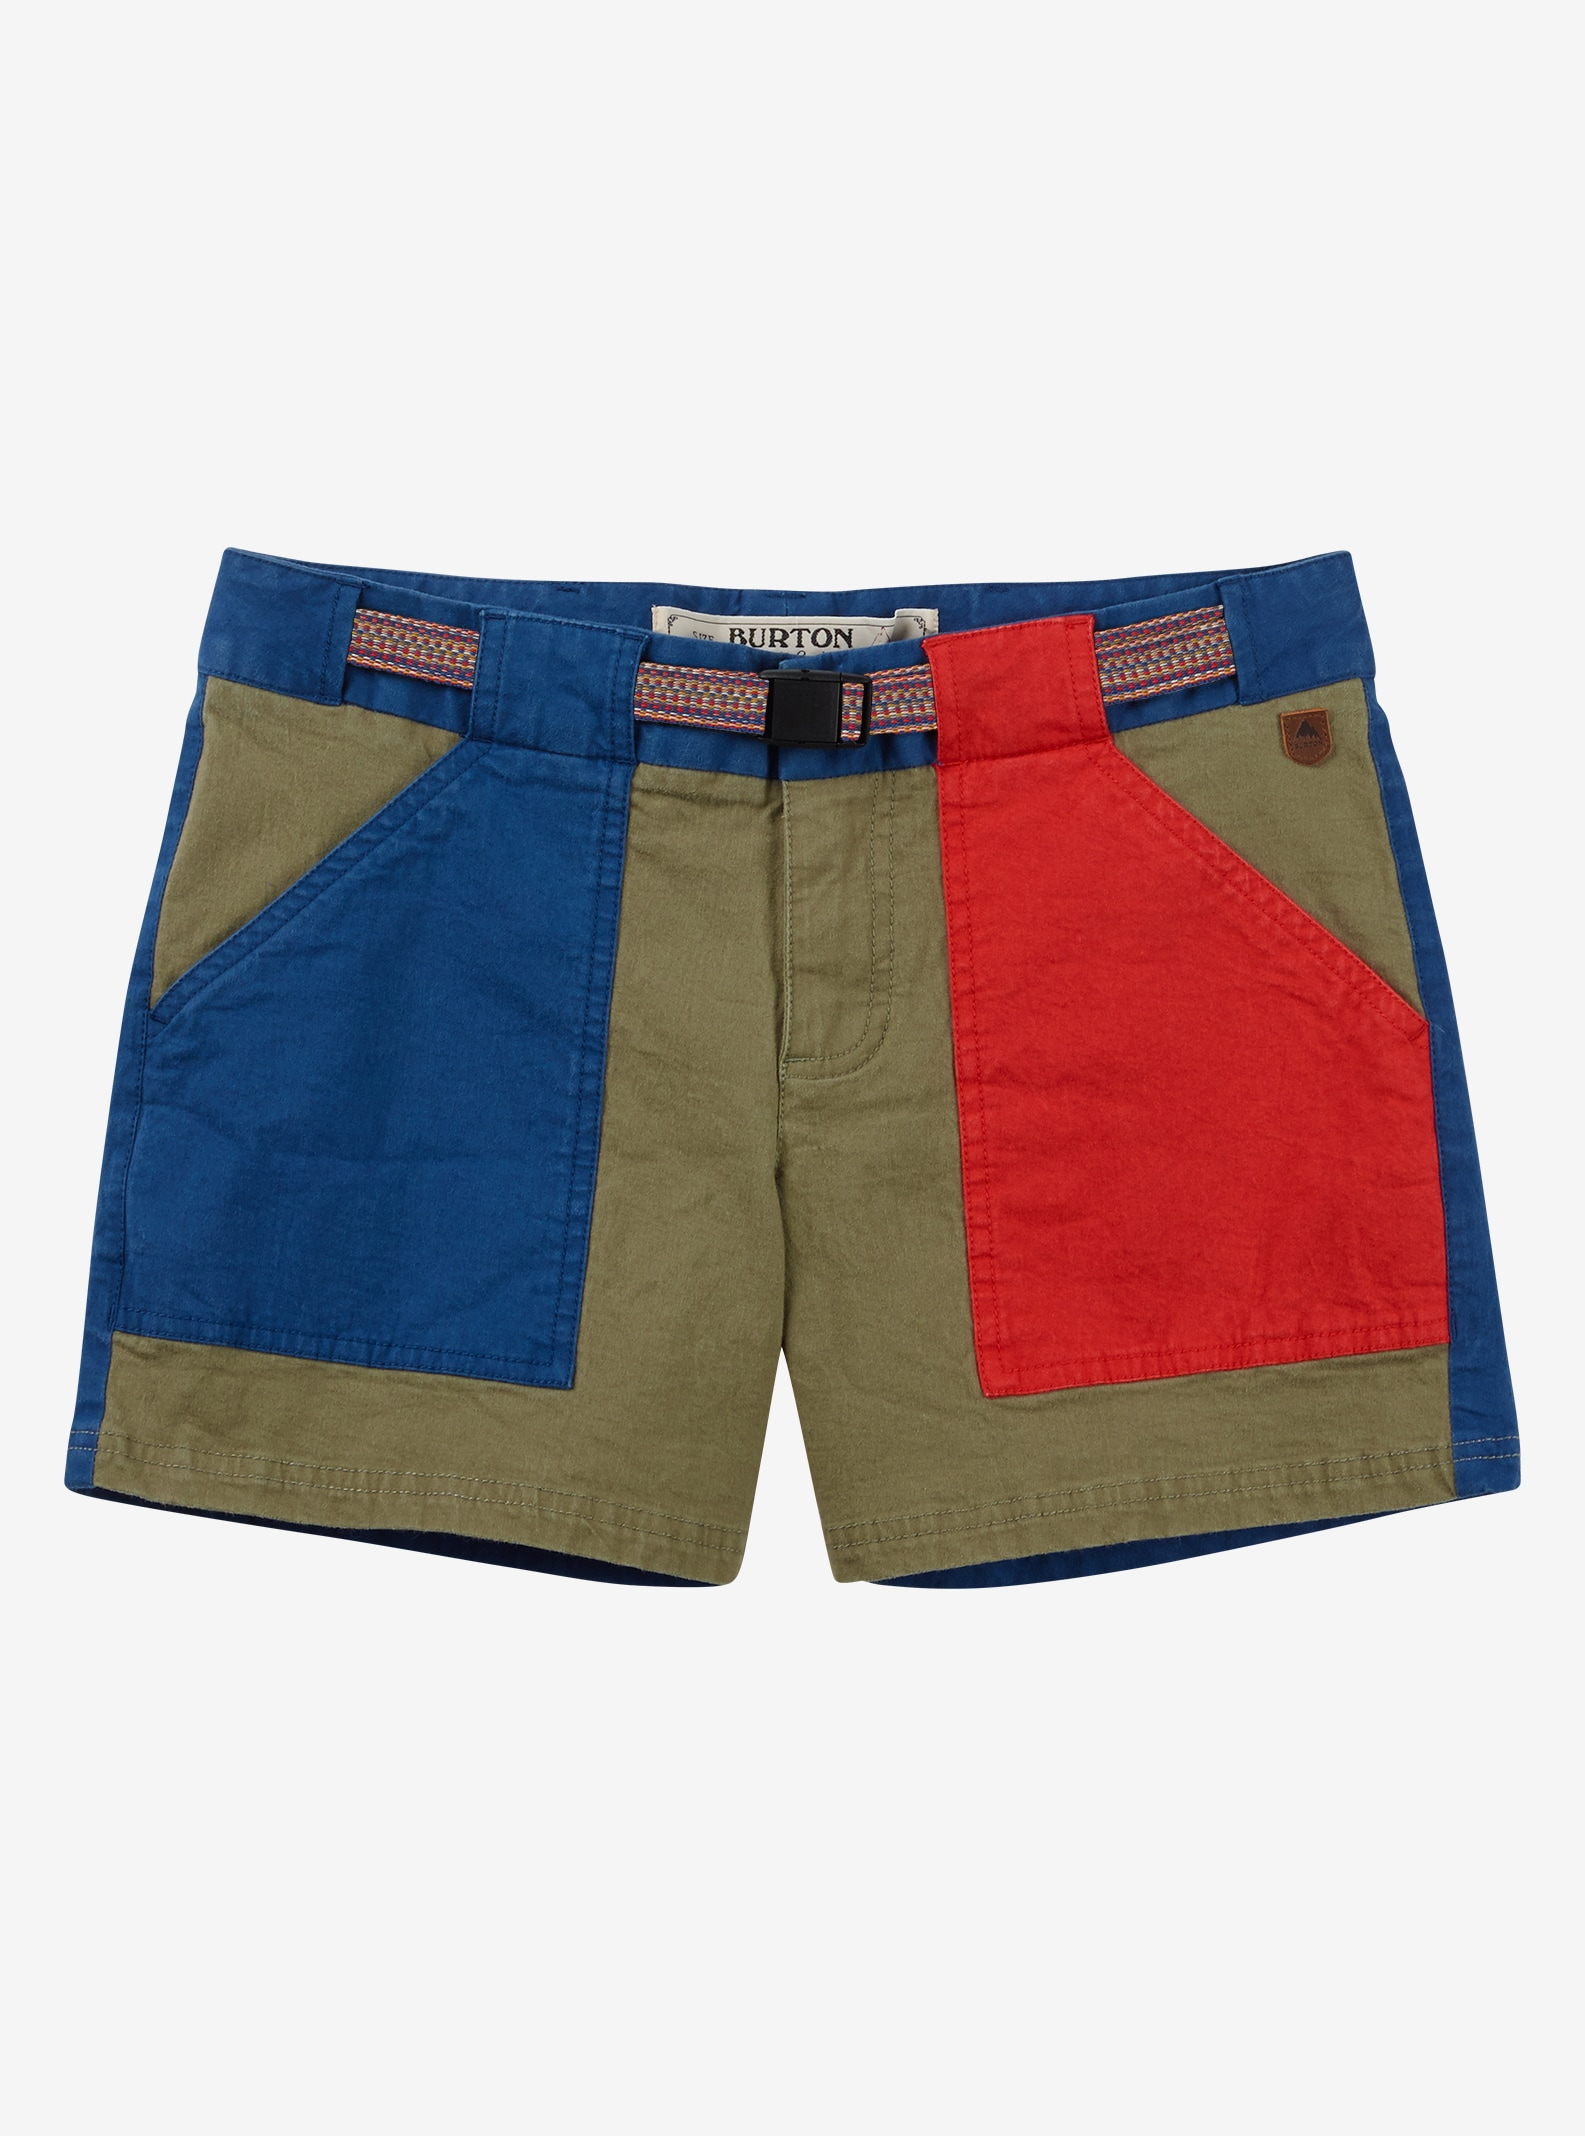 Burton Loco Shorts angezeigt in Lichen Green / True Blue / Coral